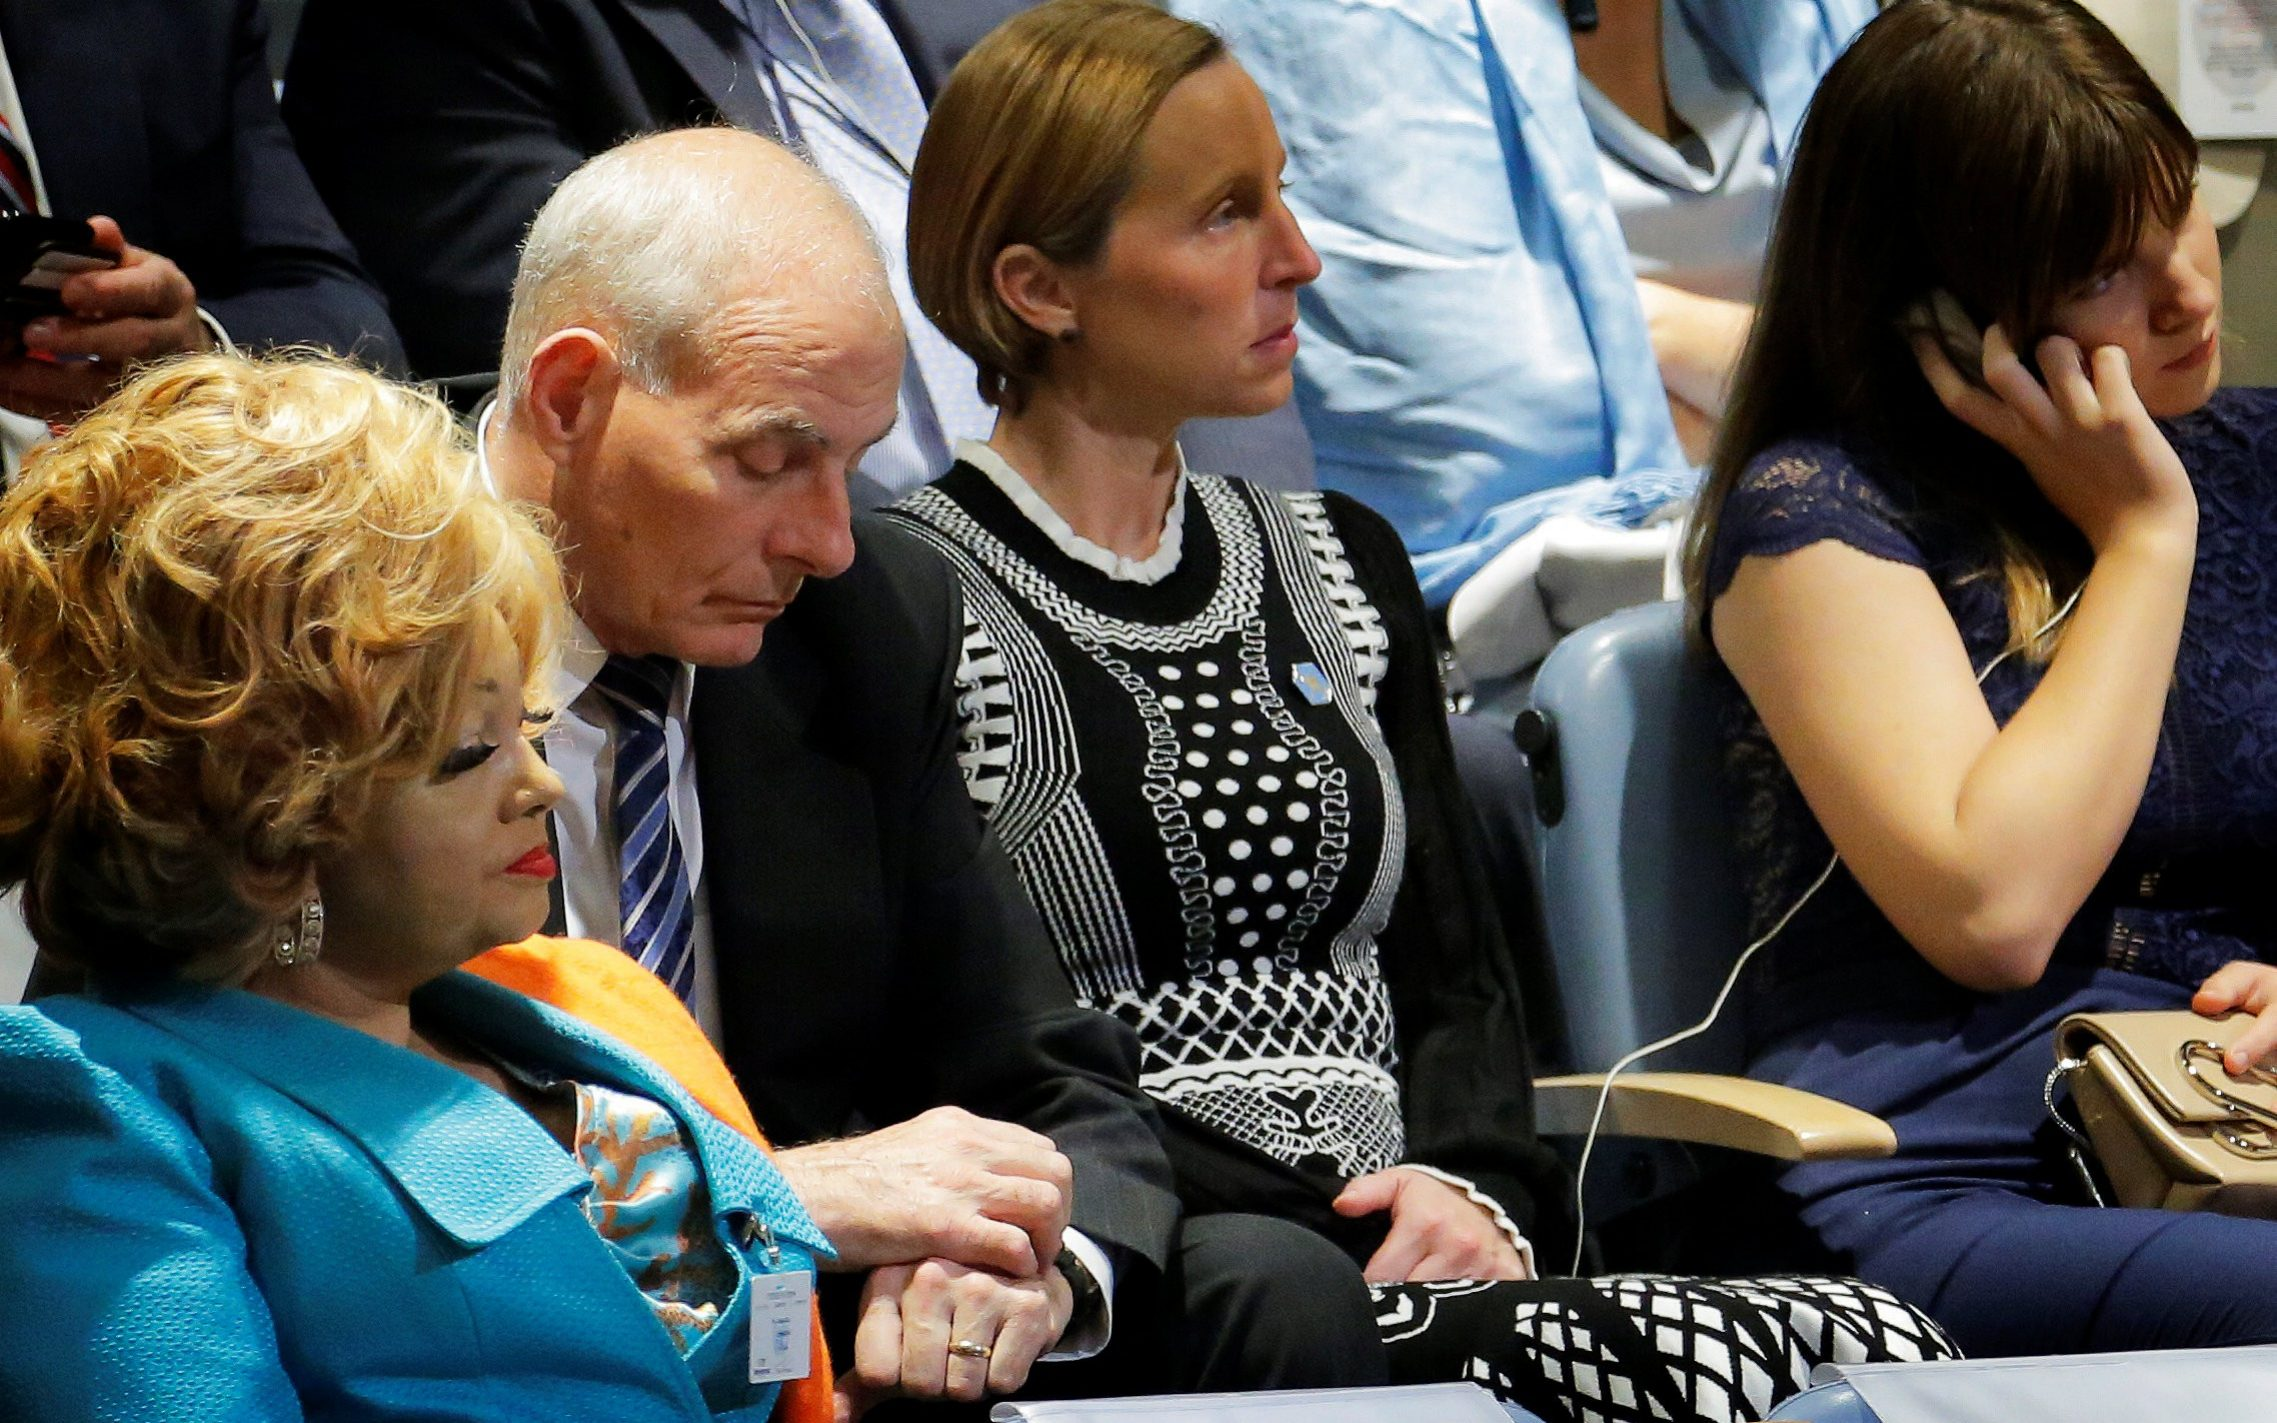 White House Chief of Staff Kelly checks his watch as he listens to U.S. President Trump deliver his address to the UN